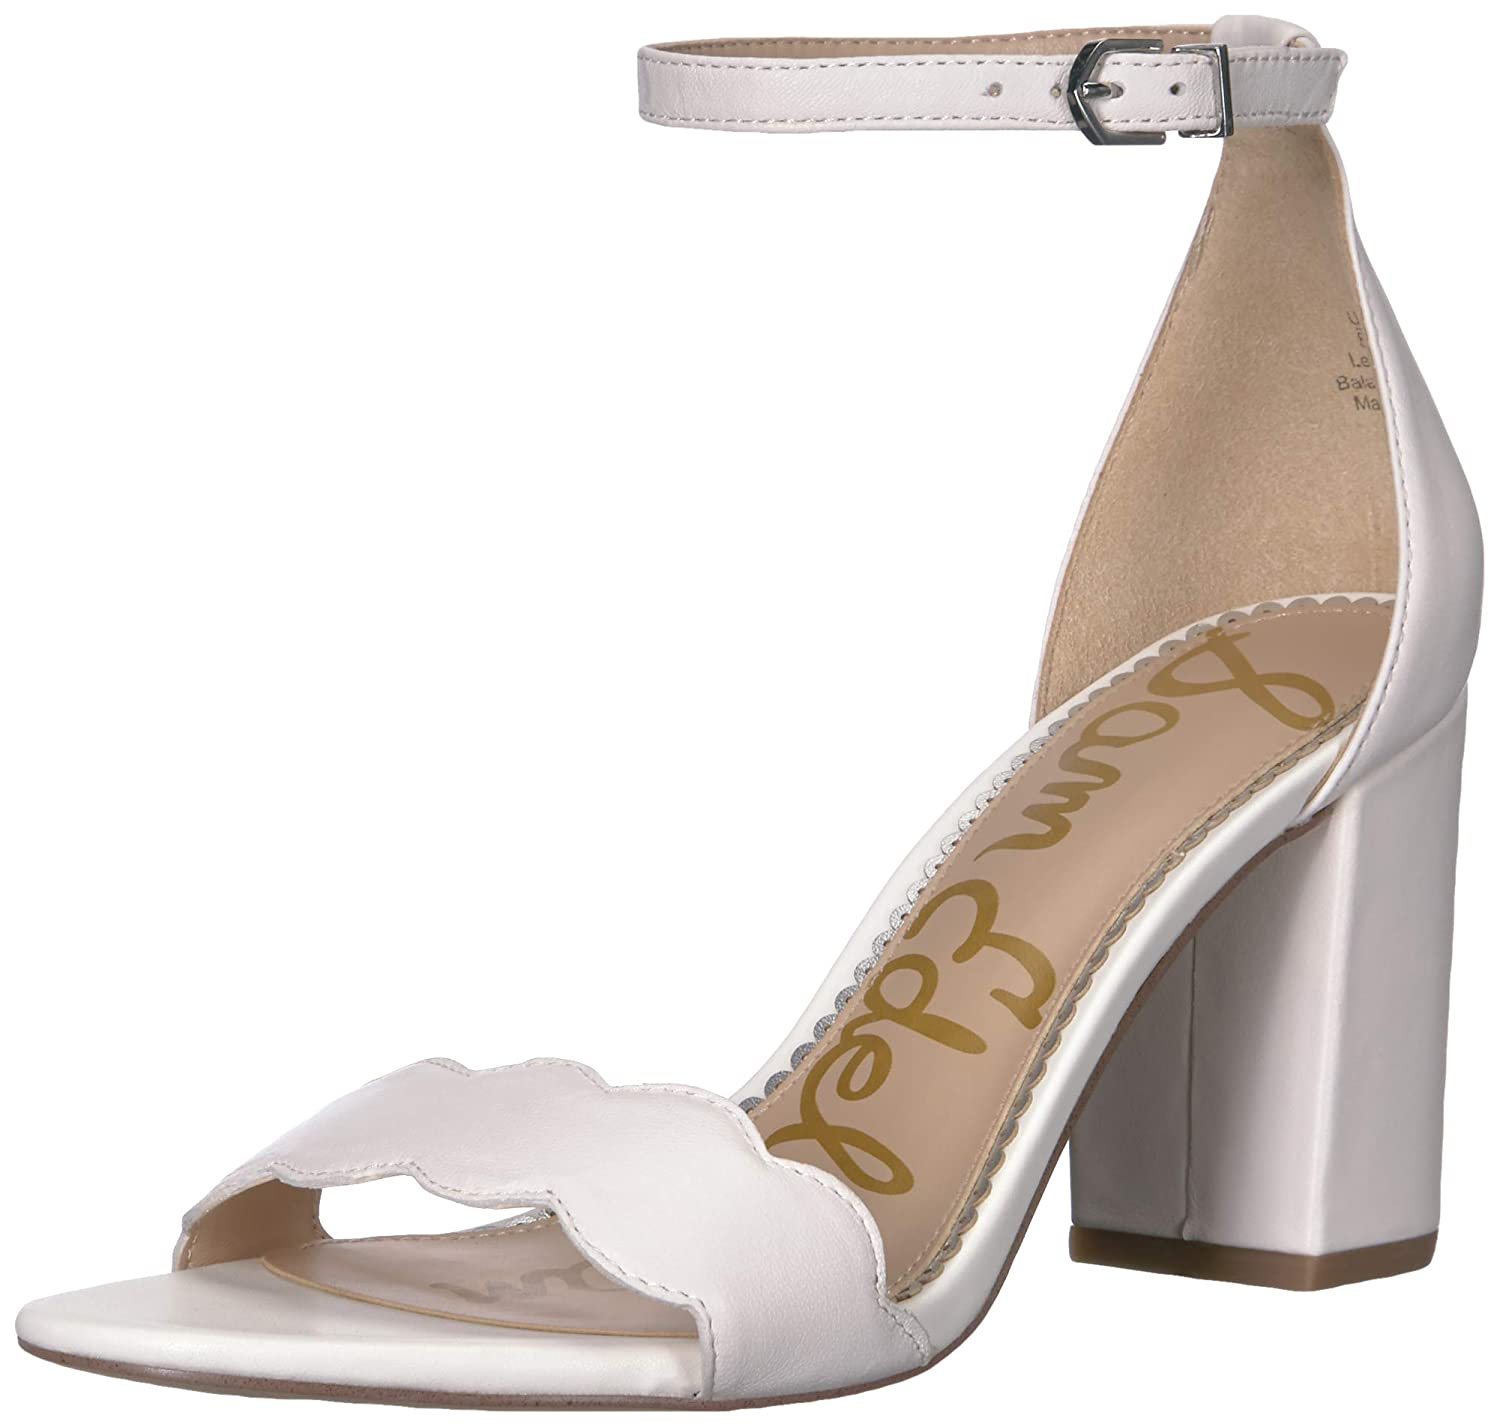 Bright White Leather Sam Edelman Women's Odila Fashion Sandals